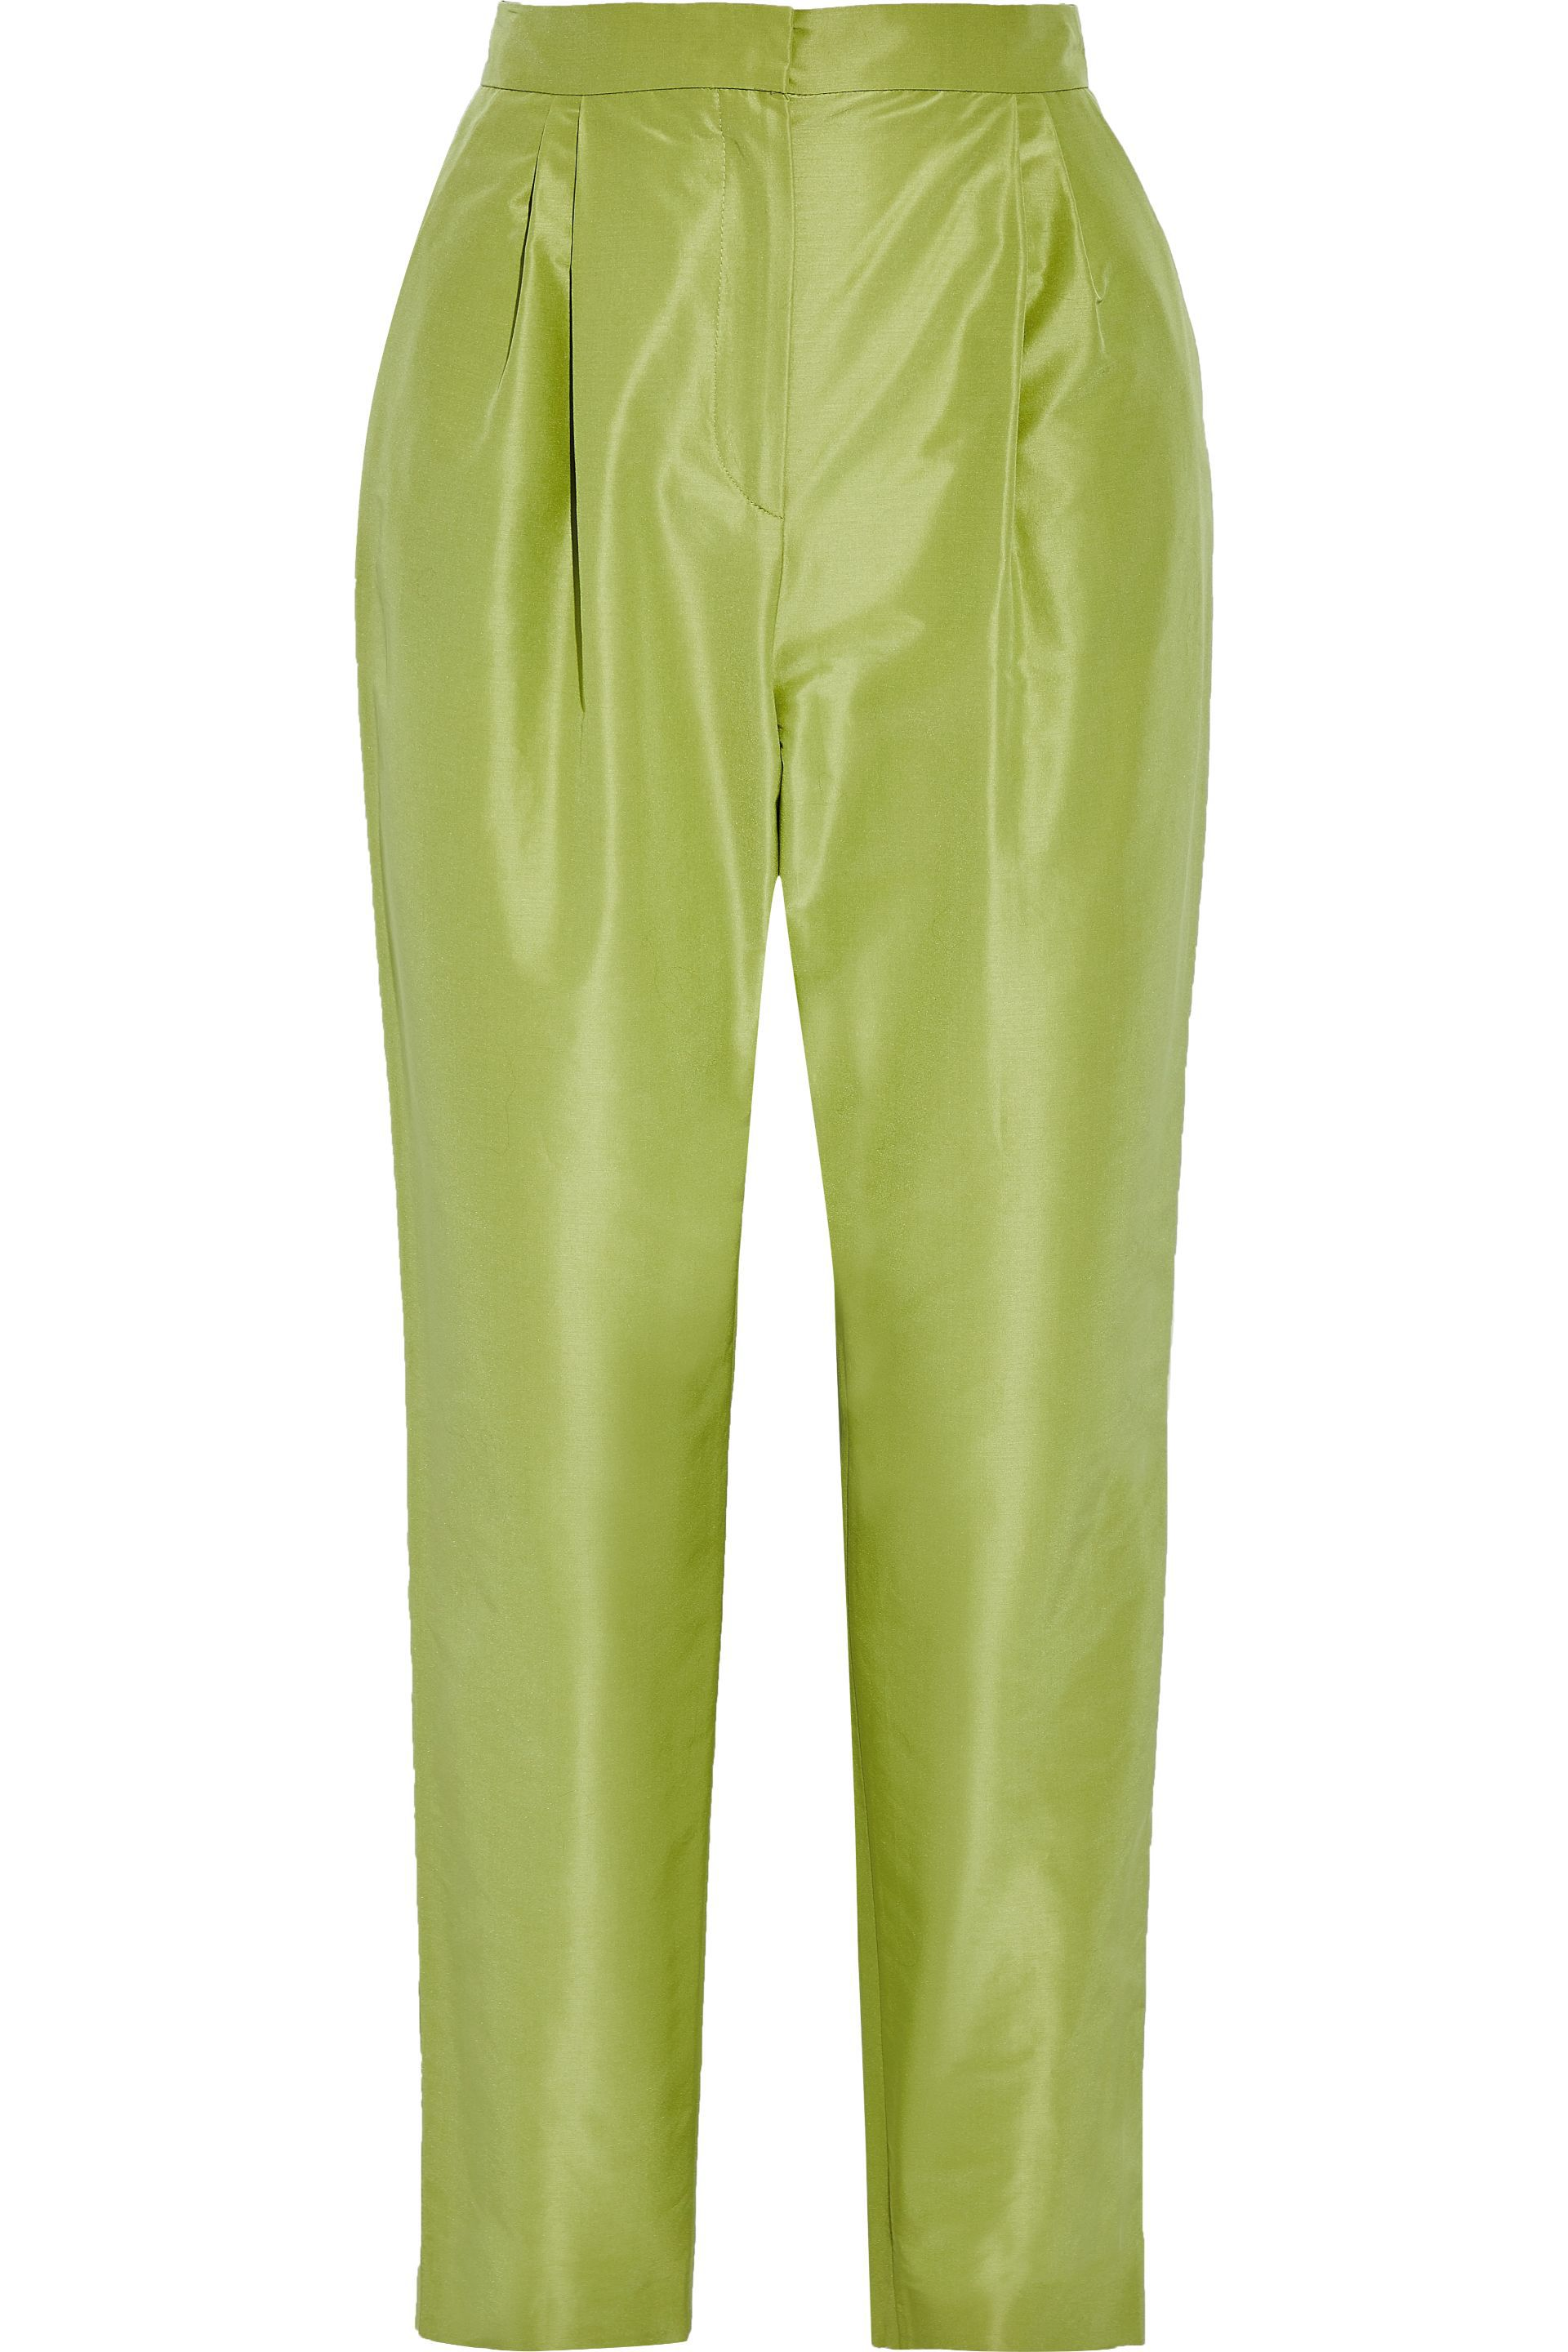 Lime Green Silk Pleated Pants, $232, The Outnet